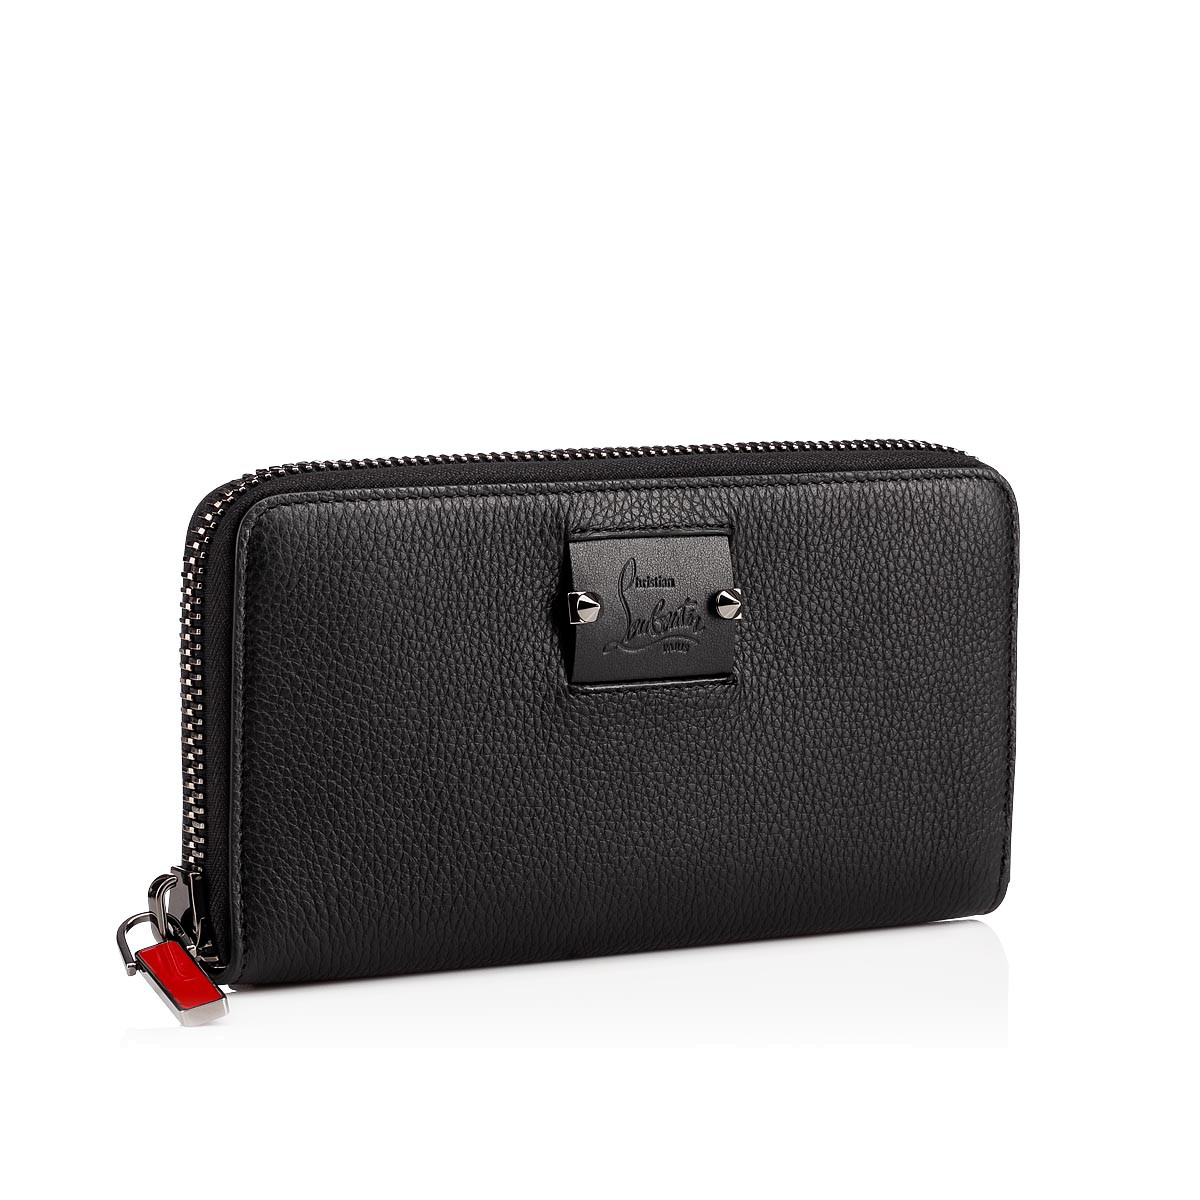 5928132cad3 Panettone Wallet Black Calfskin - Accessories - Christian Louboutin